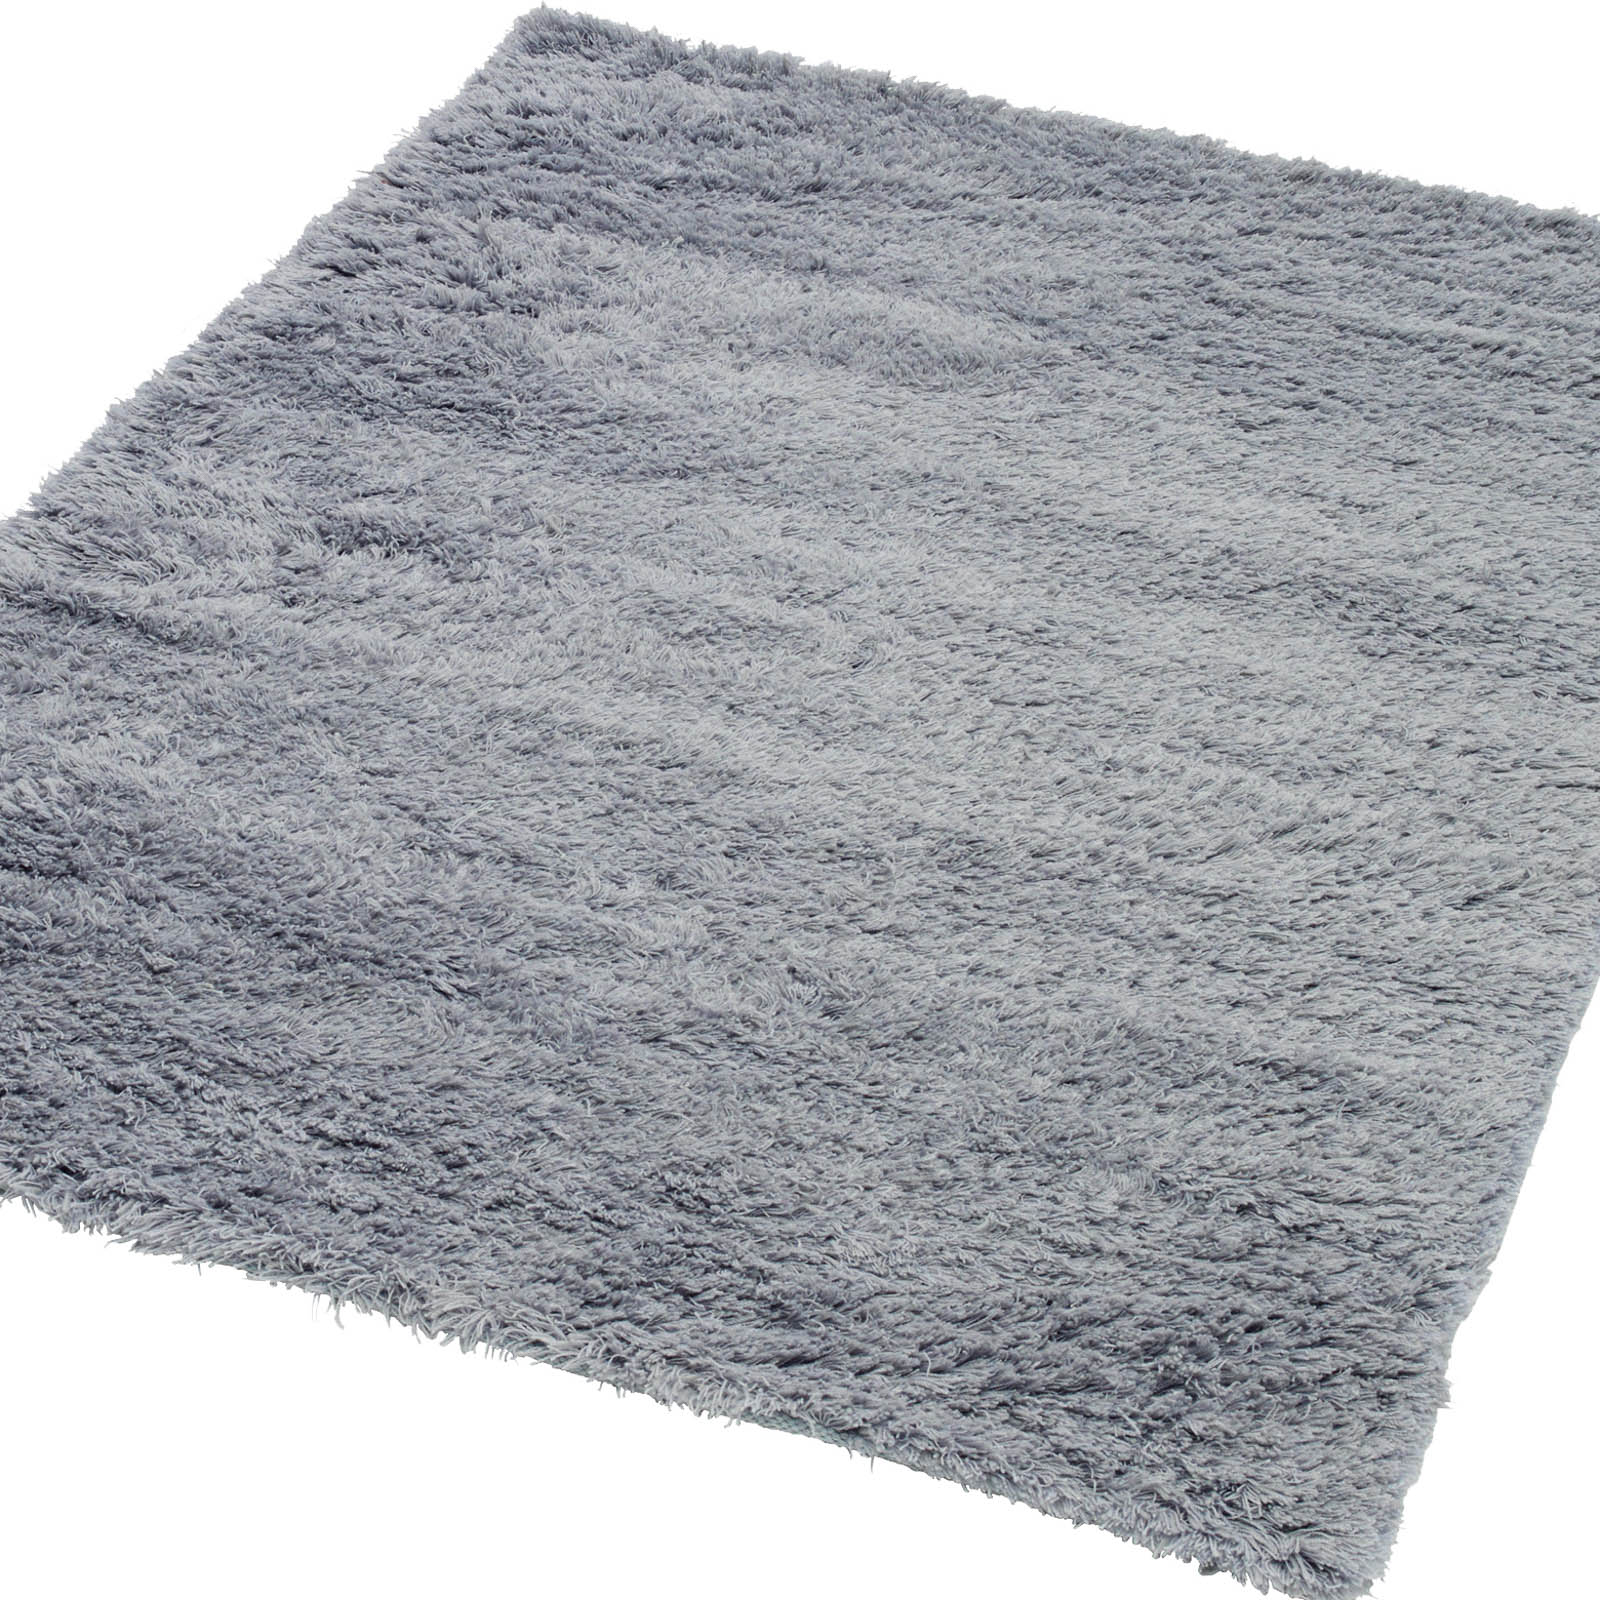 Rya Shaggy Rugs in Nordic Grey by Massimo